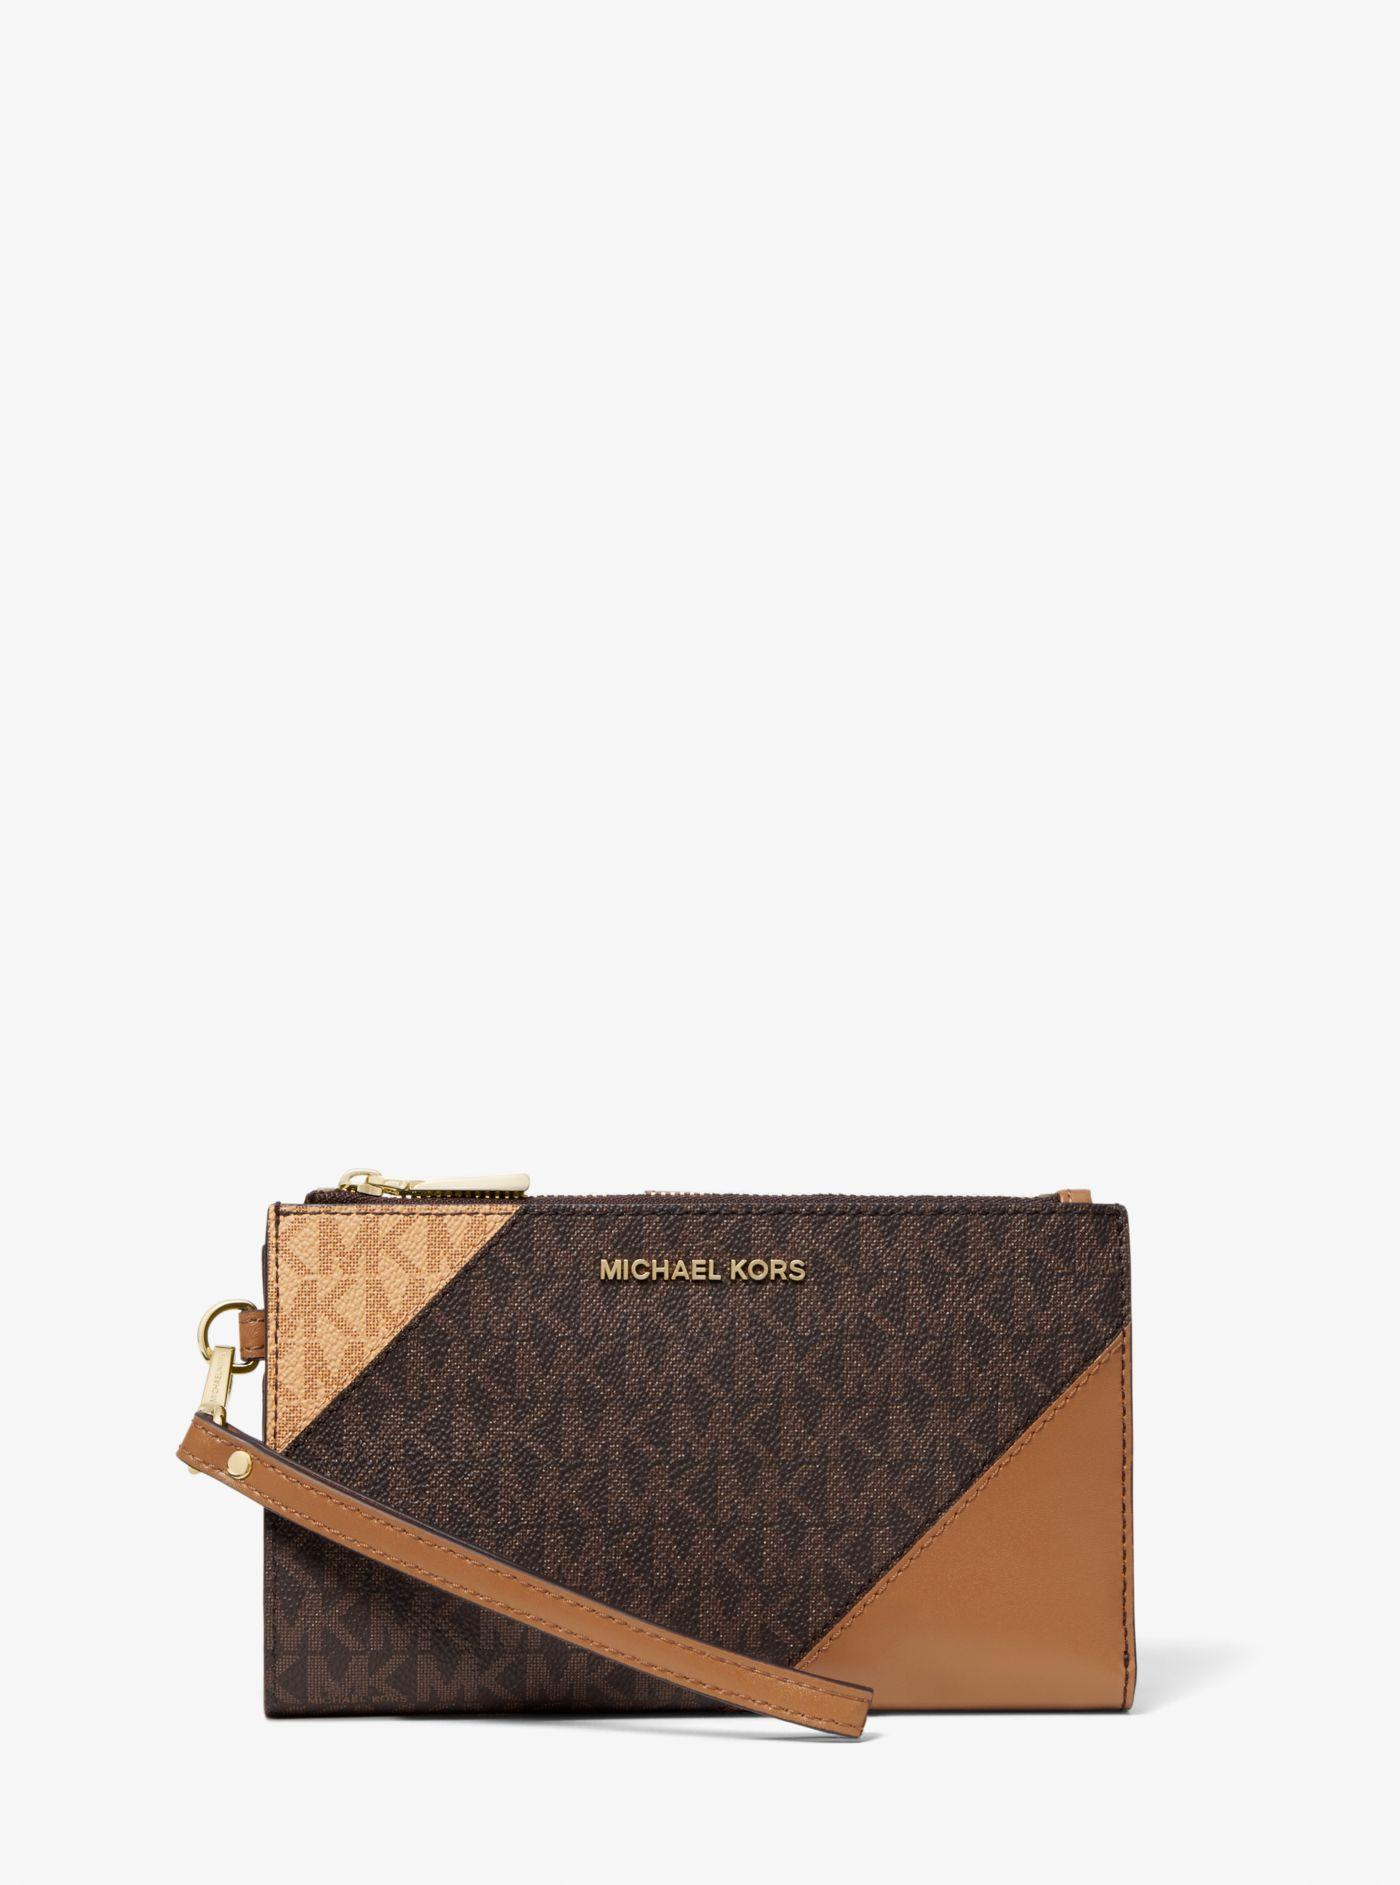 Michael Kors - Brown Adele Two-tone Logo And Leather Smartphone Wallet -  Lyst. View fullscreen 7f70ea2b788c4